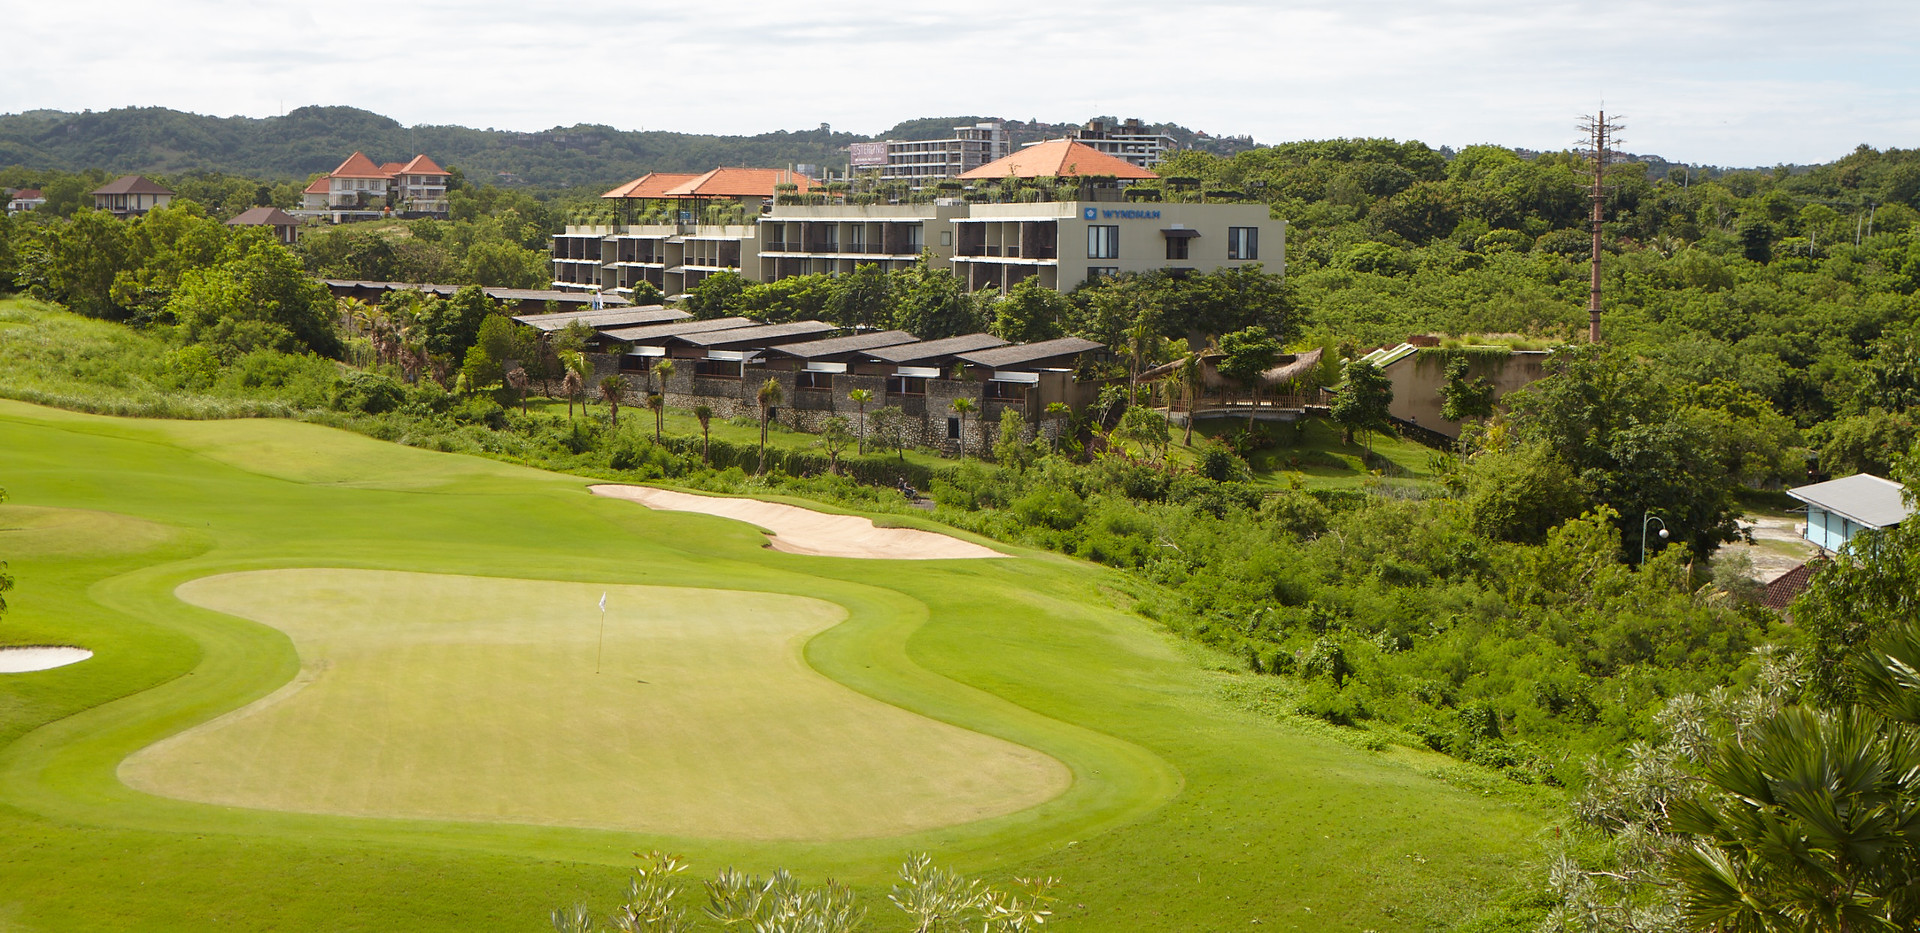 Golf Course - Wyndham Dreamland Resort Bali